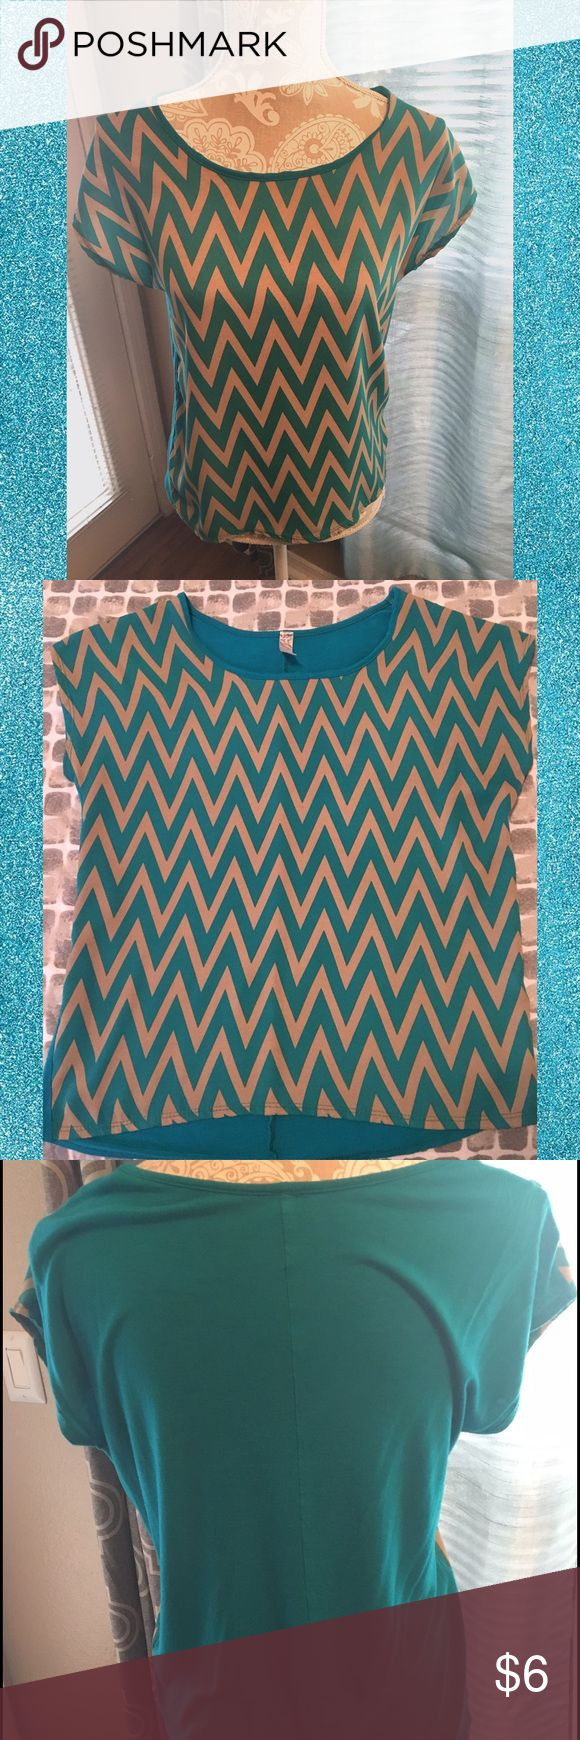 Teal and tan chevron pattern blouse Teal and tan chevron pattern blouse. Size small. EUC. No damage. Fits slightly loose or could work for a M as well. Solid back with pattern on front. Soft material. Goes great with pants, shorts or slacks. Add a blazer for a great office outfit. #teal #tan #small #blouse #top #woman ❌no trades❌ Tops Blouses